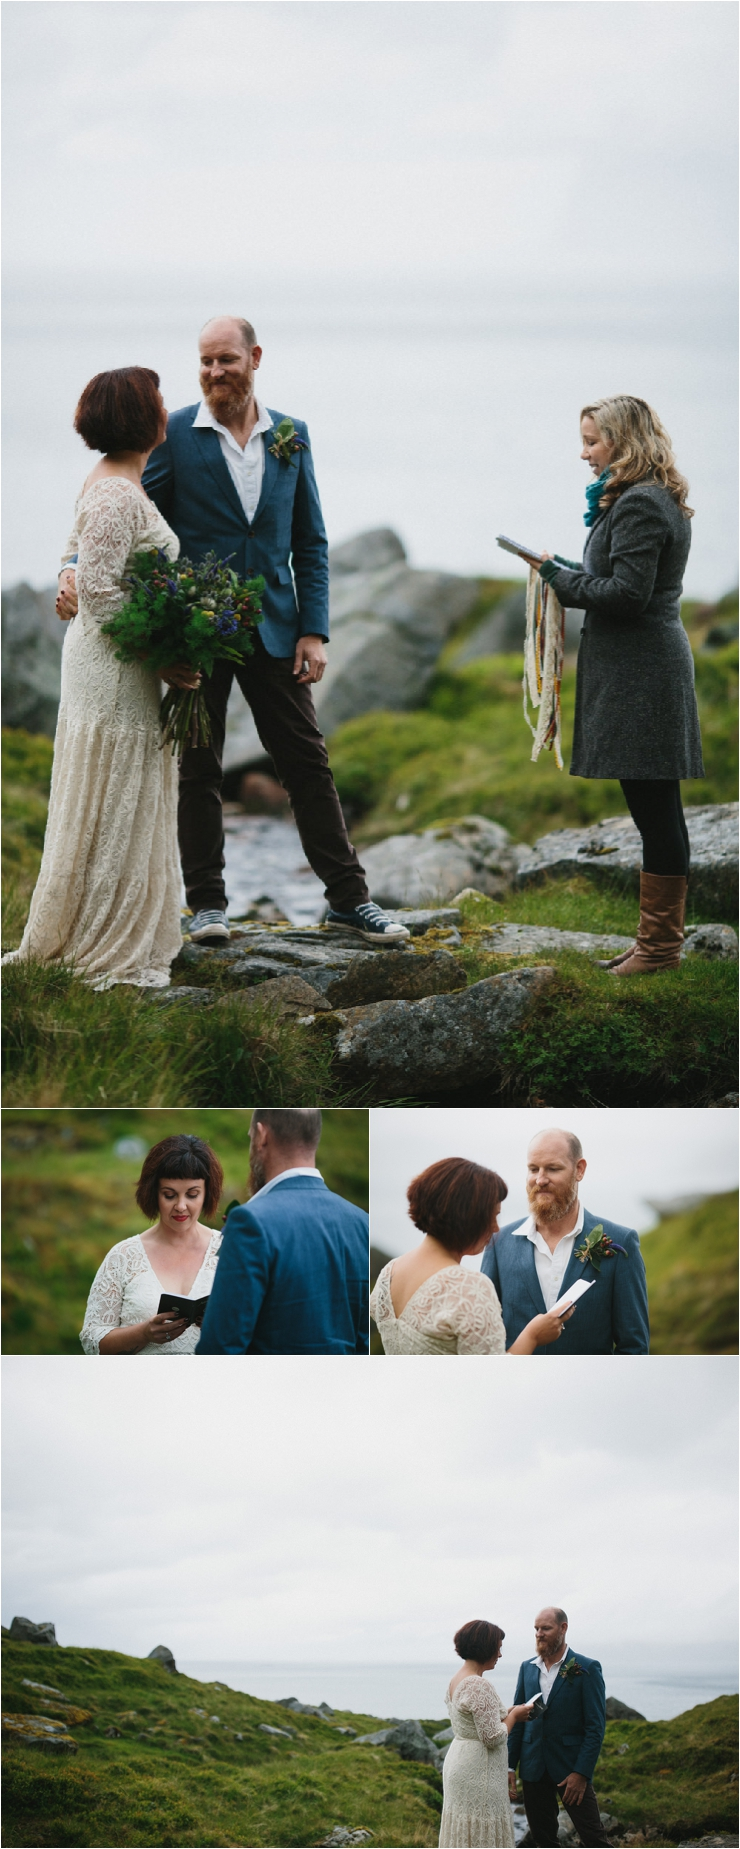 Maz and Dave exchange vows during their ceremony on a mountain in Lofoten Norway by Thomas Stewart